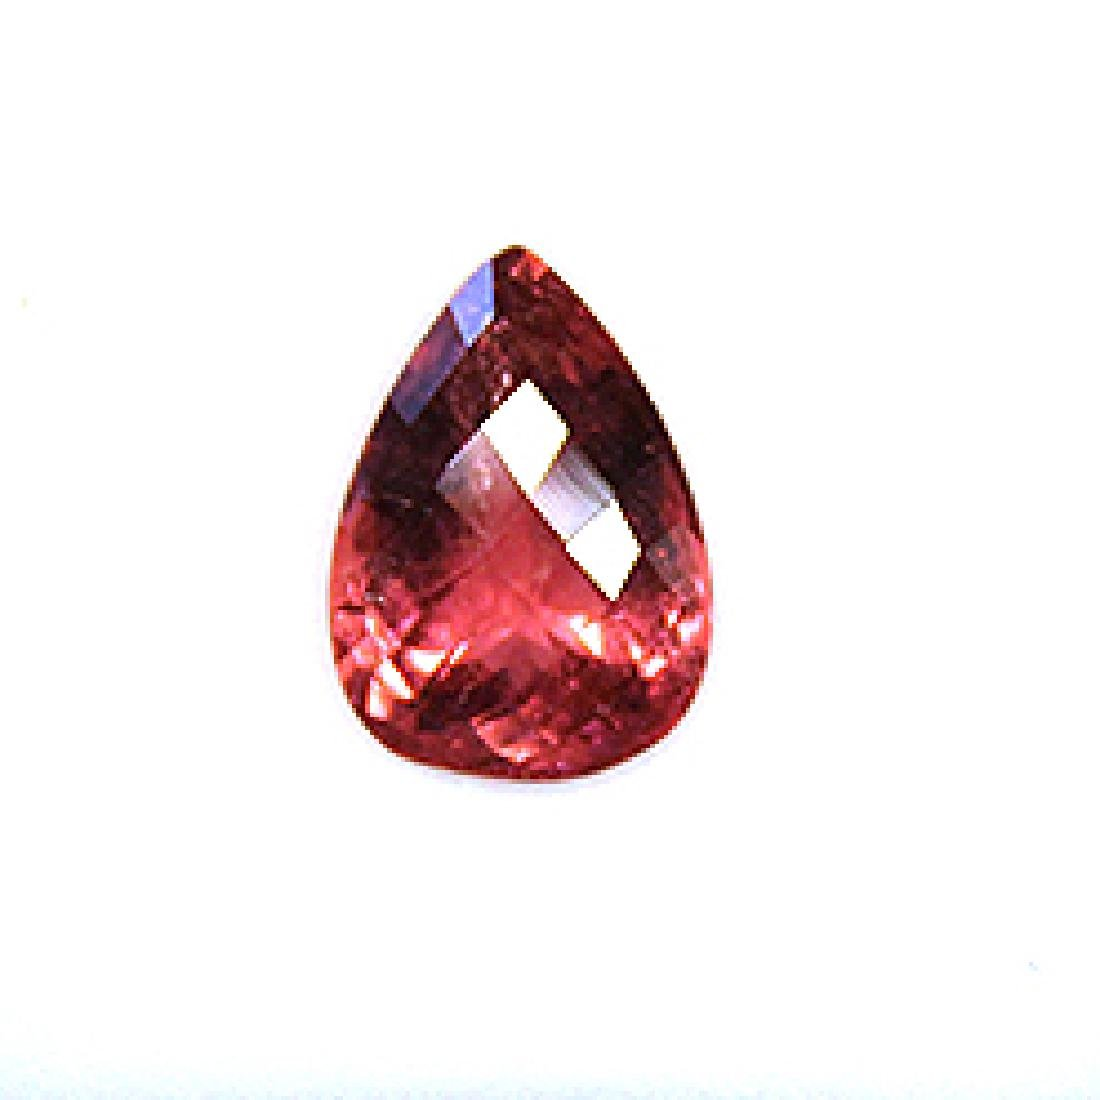 5.17 CT Rubellite Tourmaline Gemstone - 2